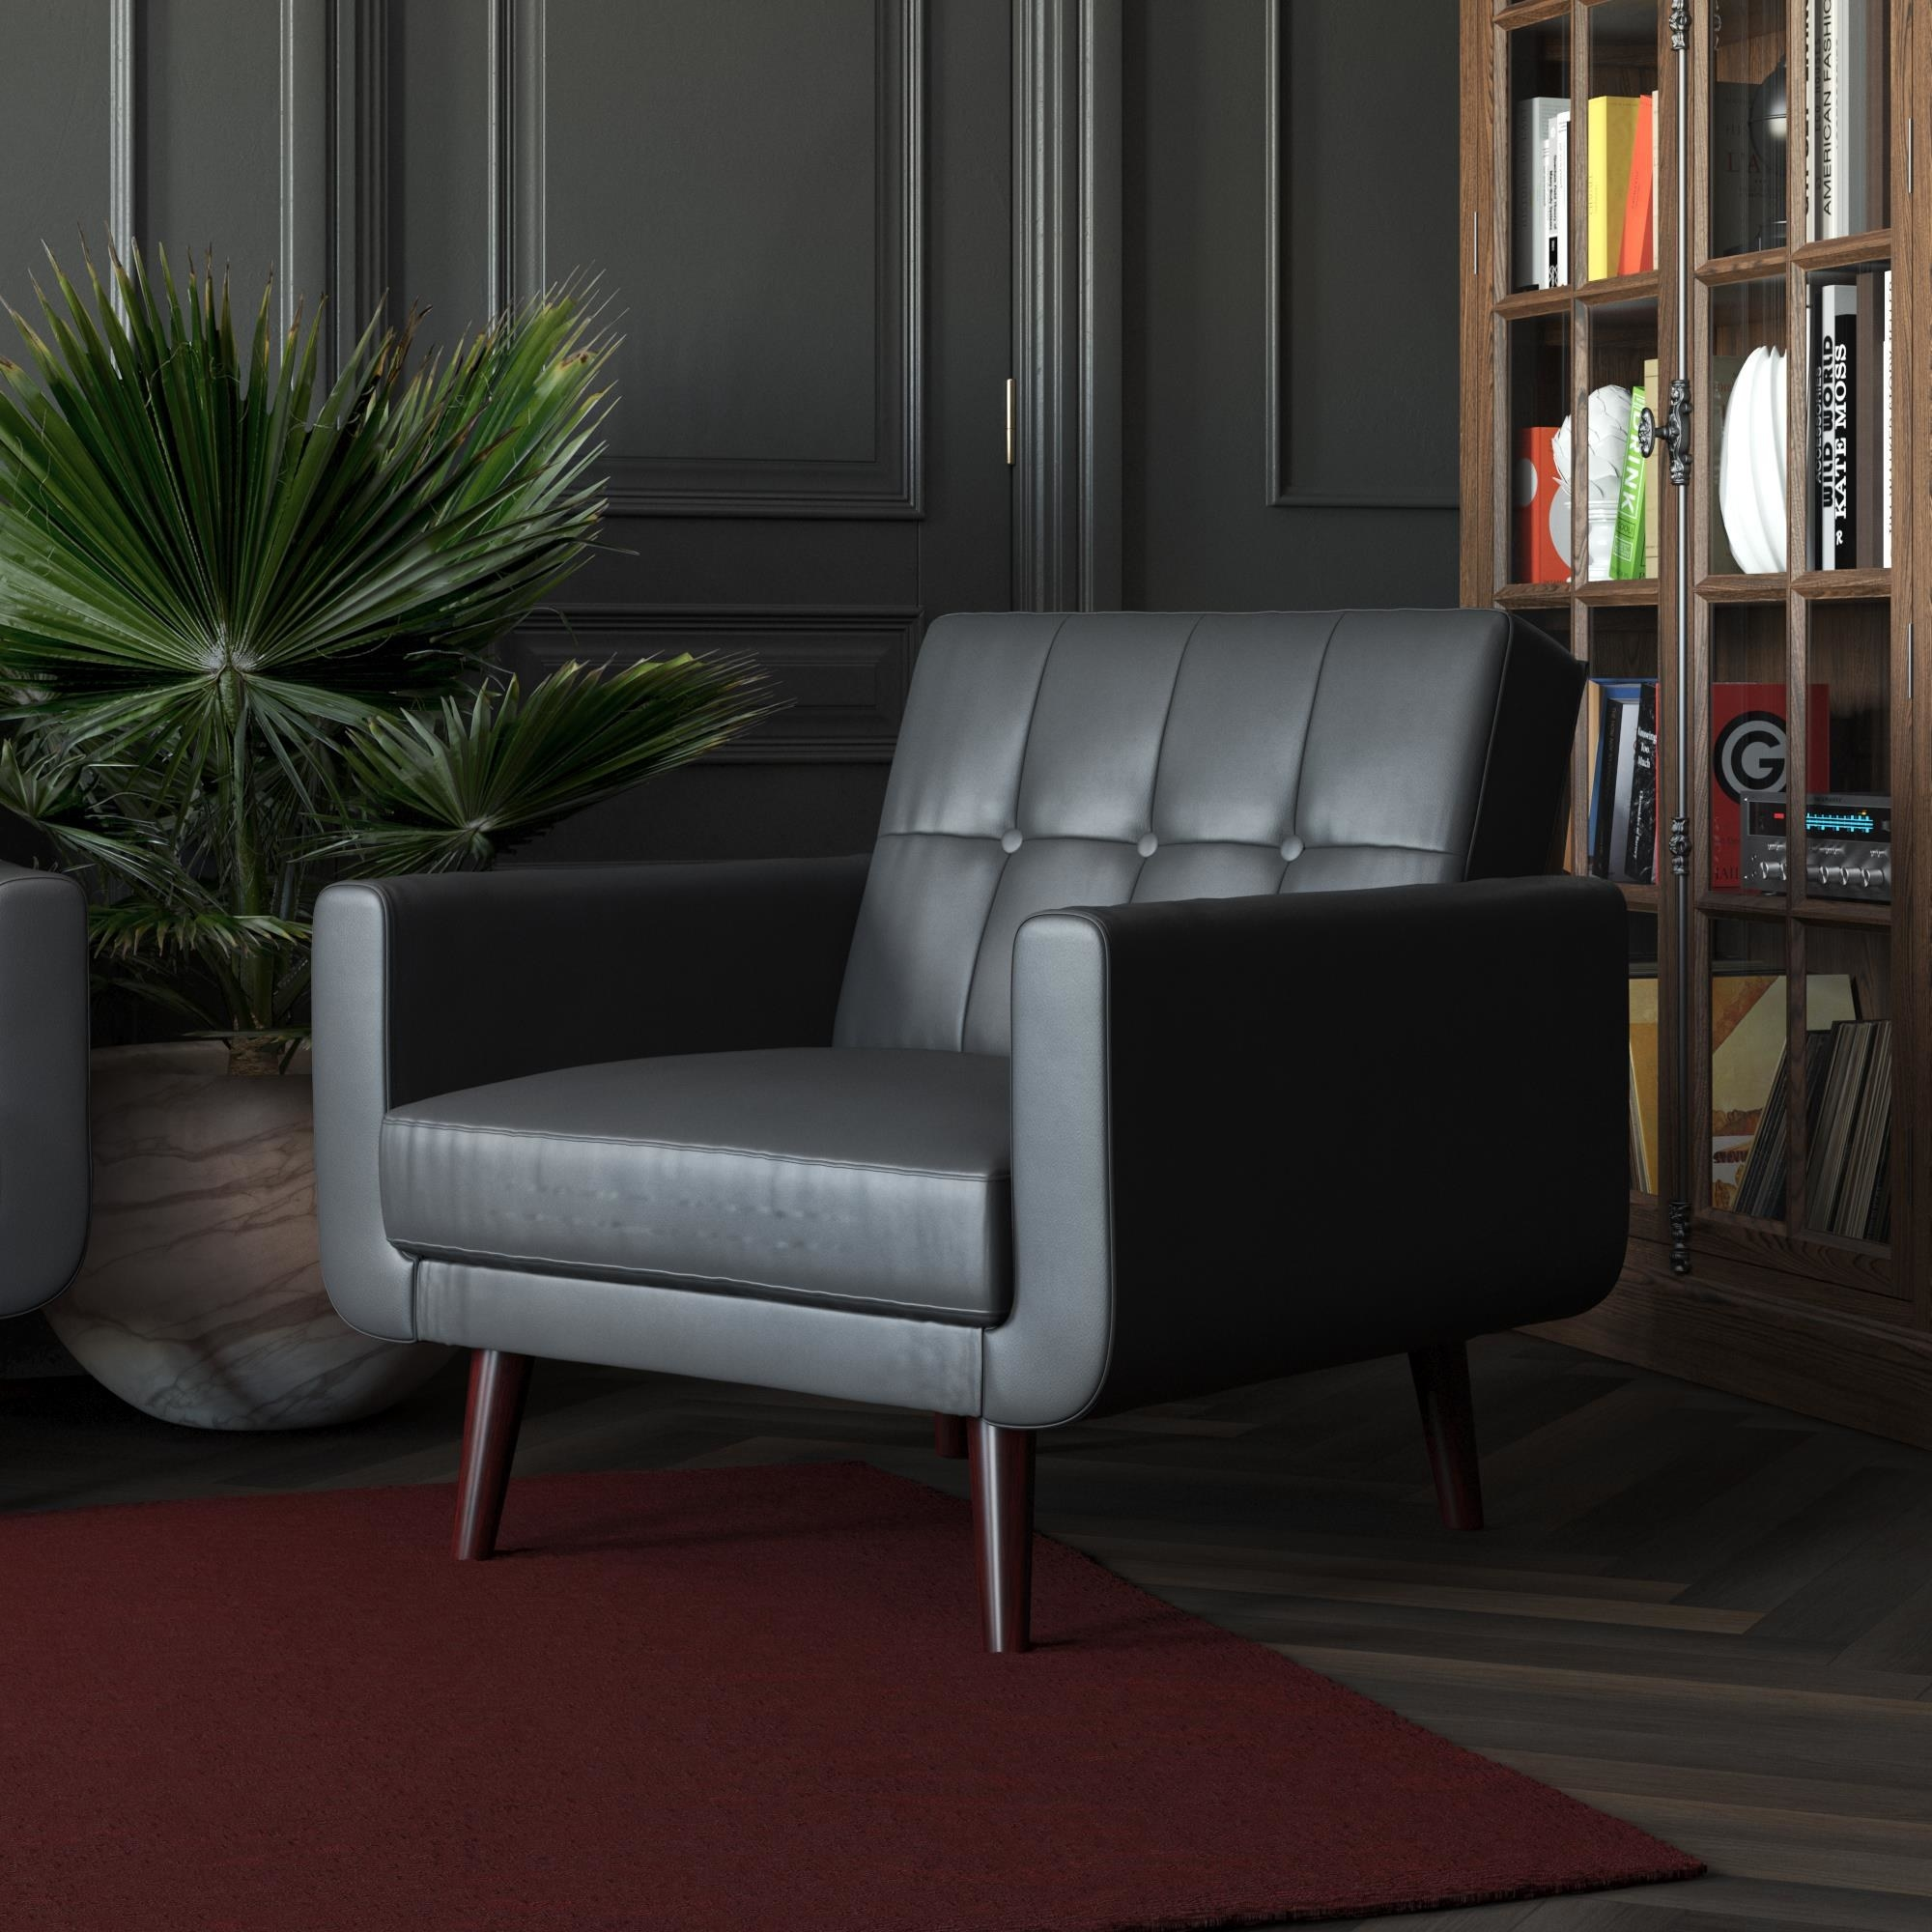 The black leather chair in front of a bookshelf